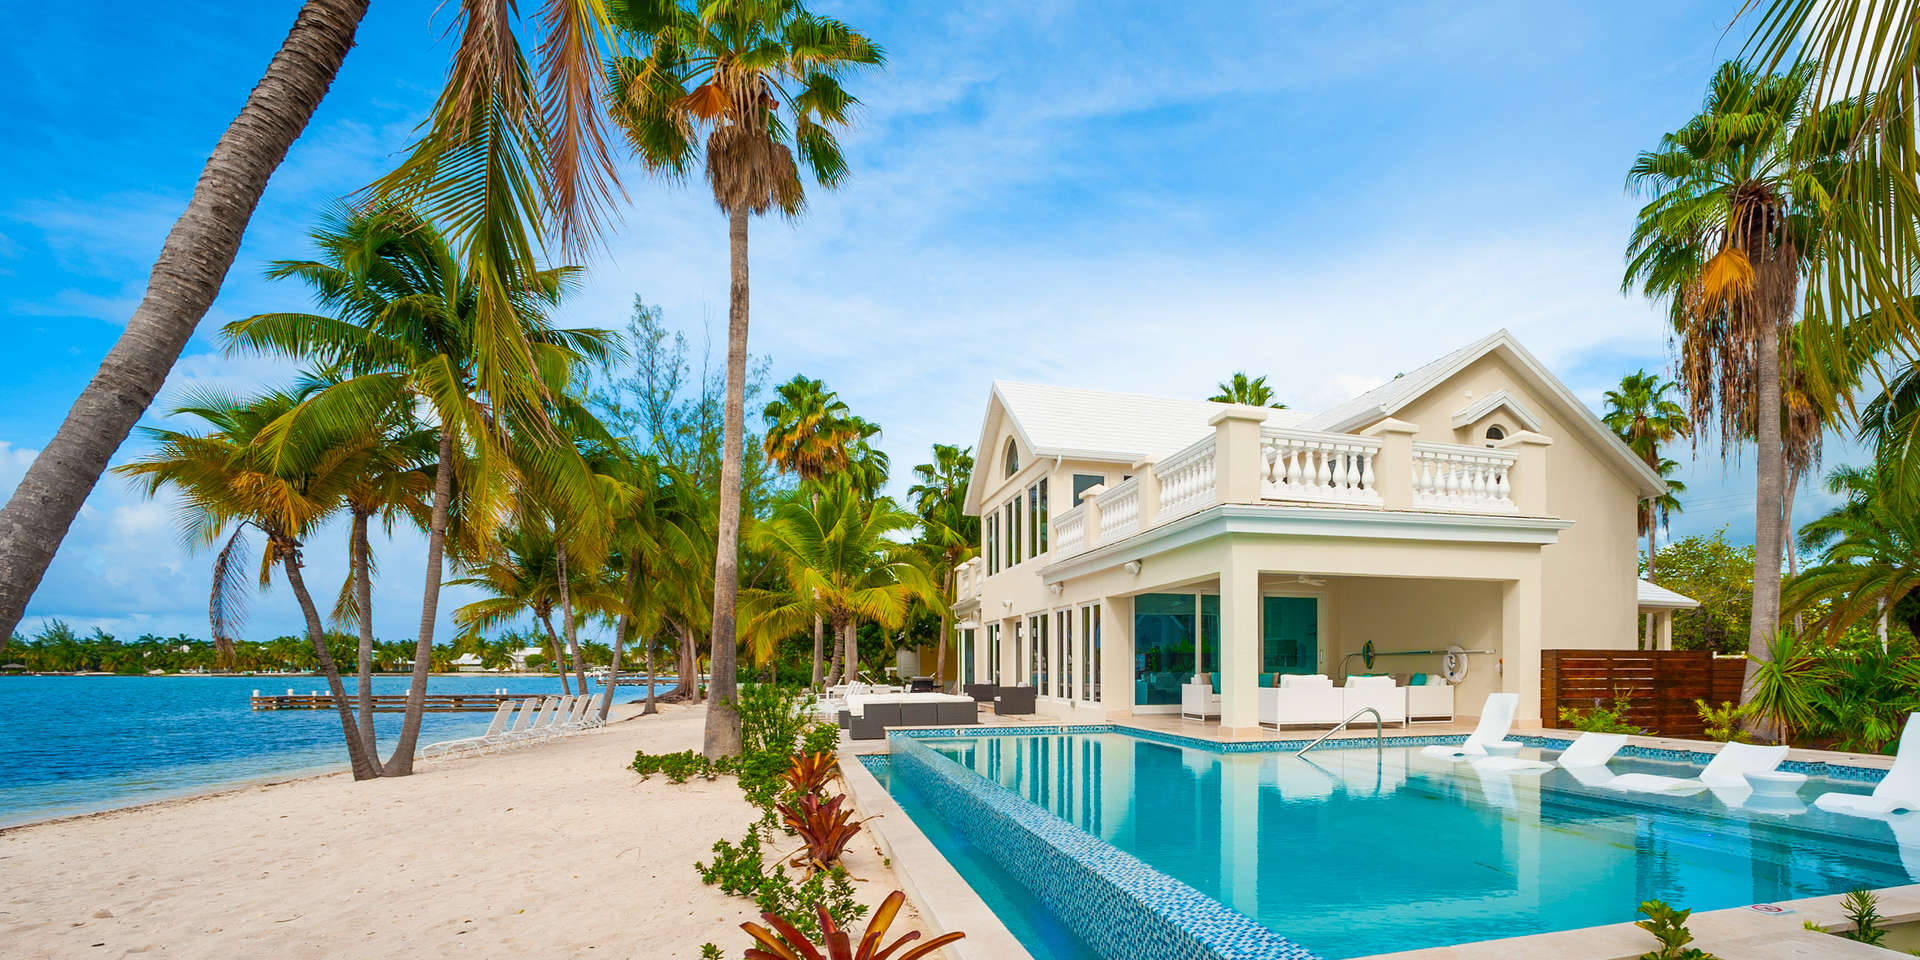 Luxury villa rentals caribbean - Cayman islands - Grand cayman - Cayman kai - Crystal Waters - Image 1/20